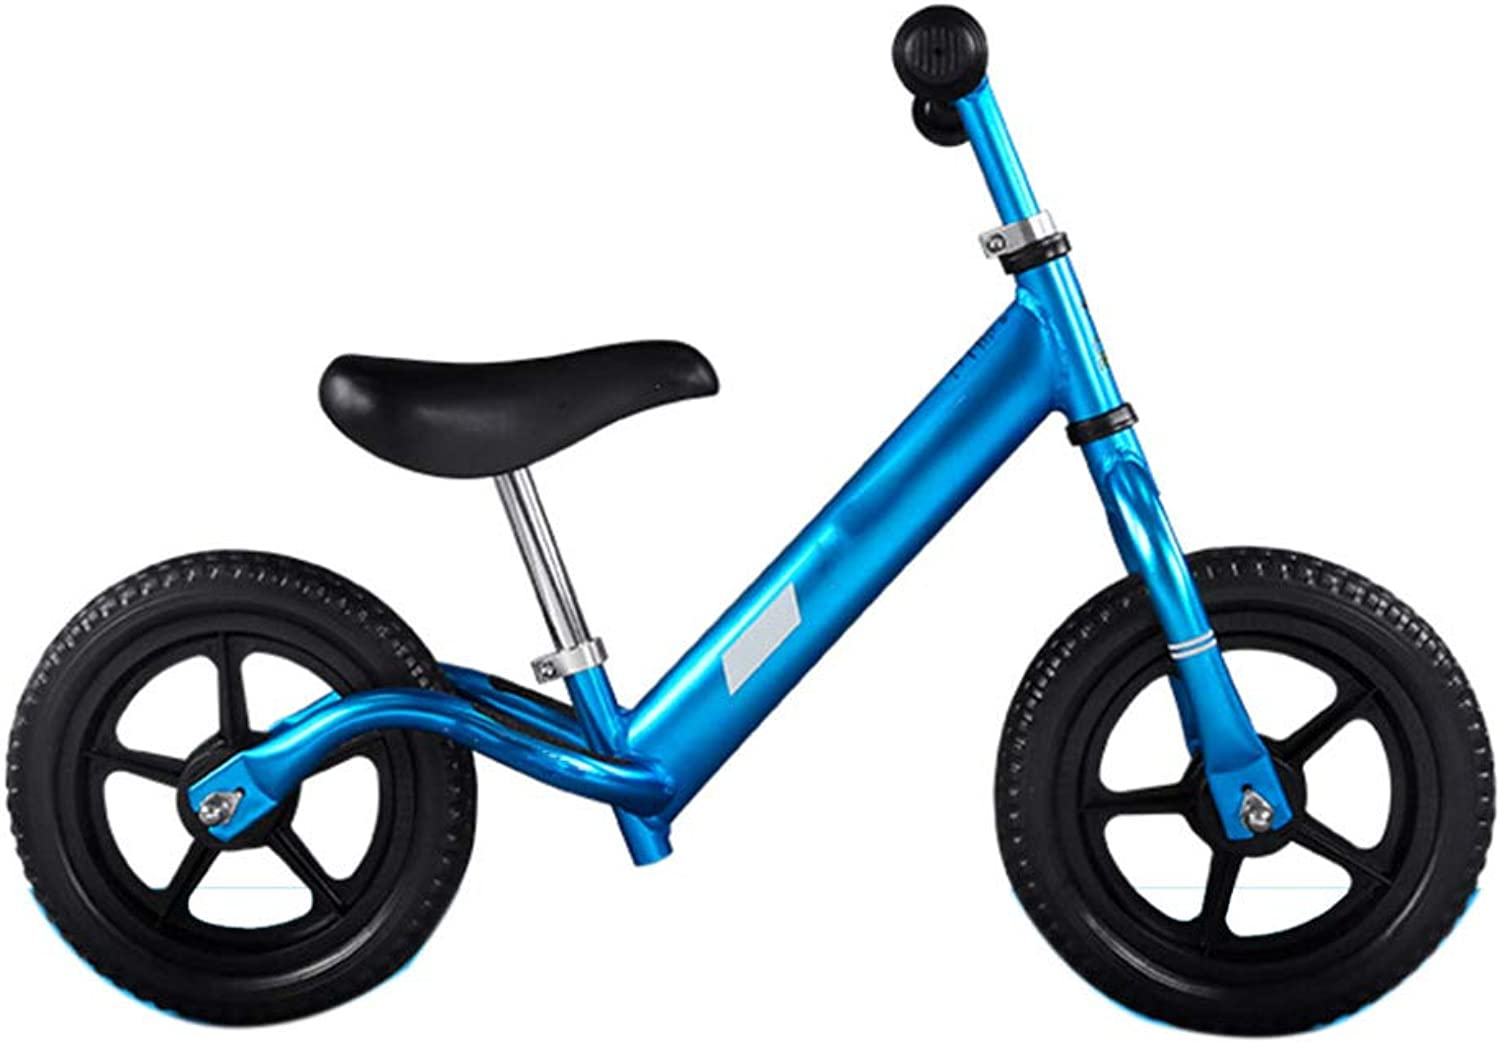 GSDZSY - 12 Inch Balance Bike No Pedal For 2-6 Years,Aluminum Alloy Frame, Adjustable Handlebar, With Steering Limiter, EVA Inflatable Rubber Wheel,blueeEVA